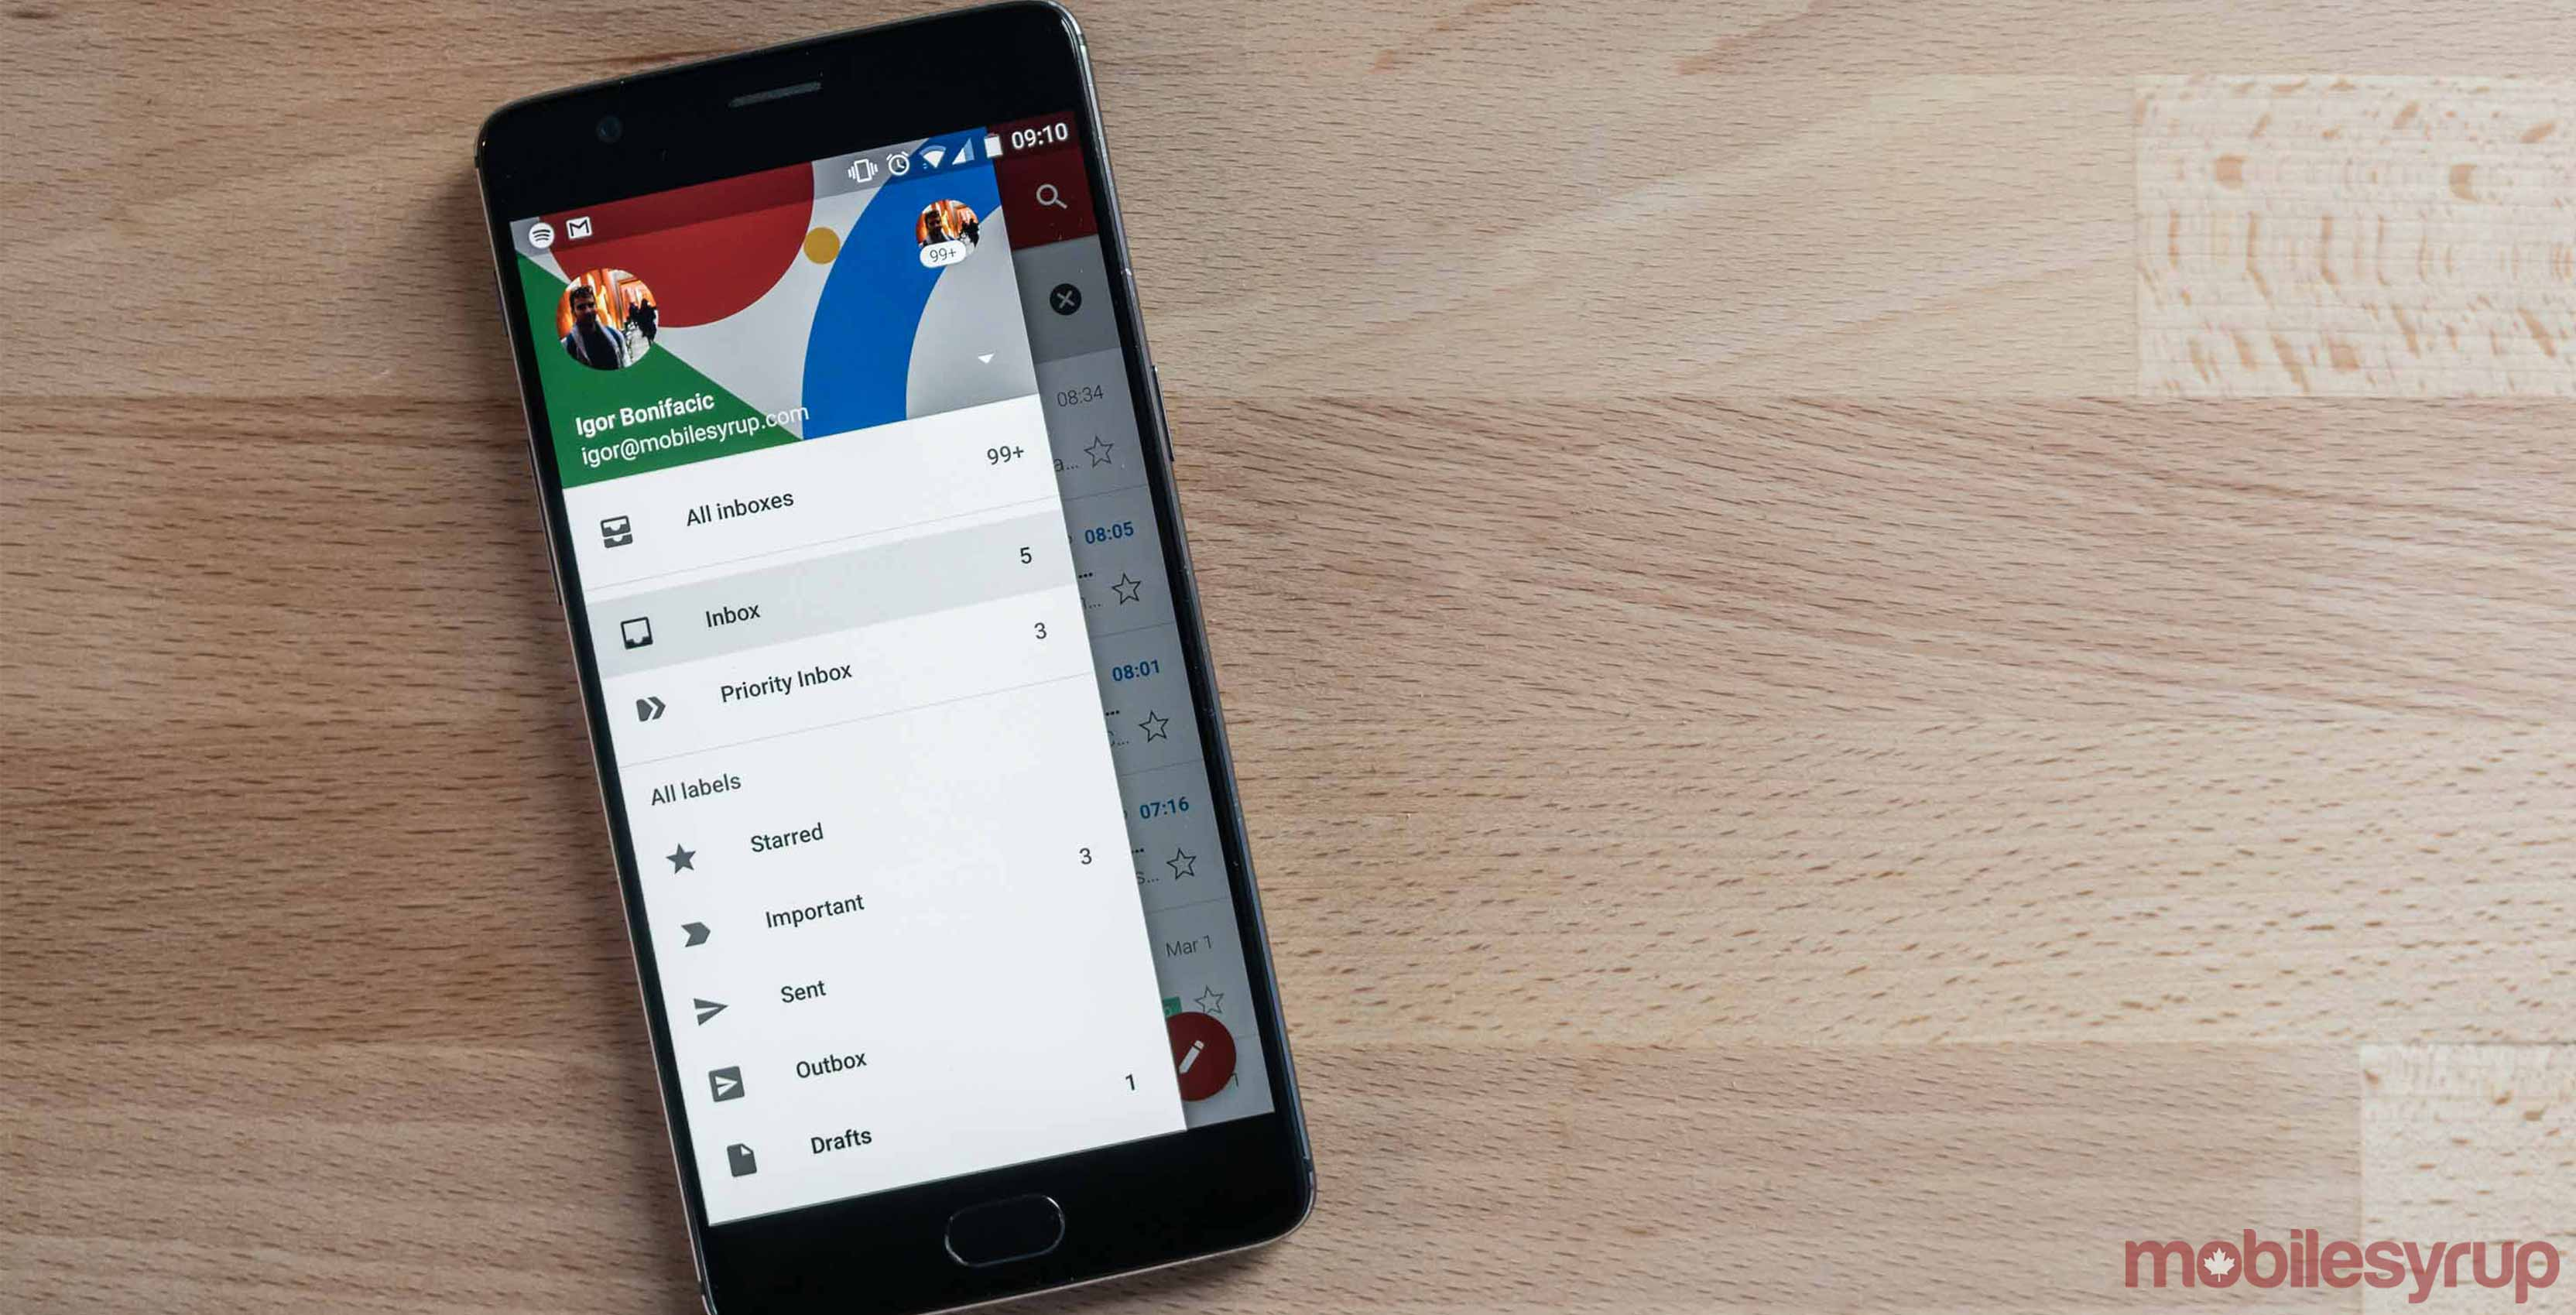 Here s how to enable experimental Smart Compose in Gmail Gmail app on Android